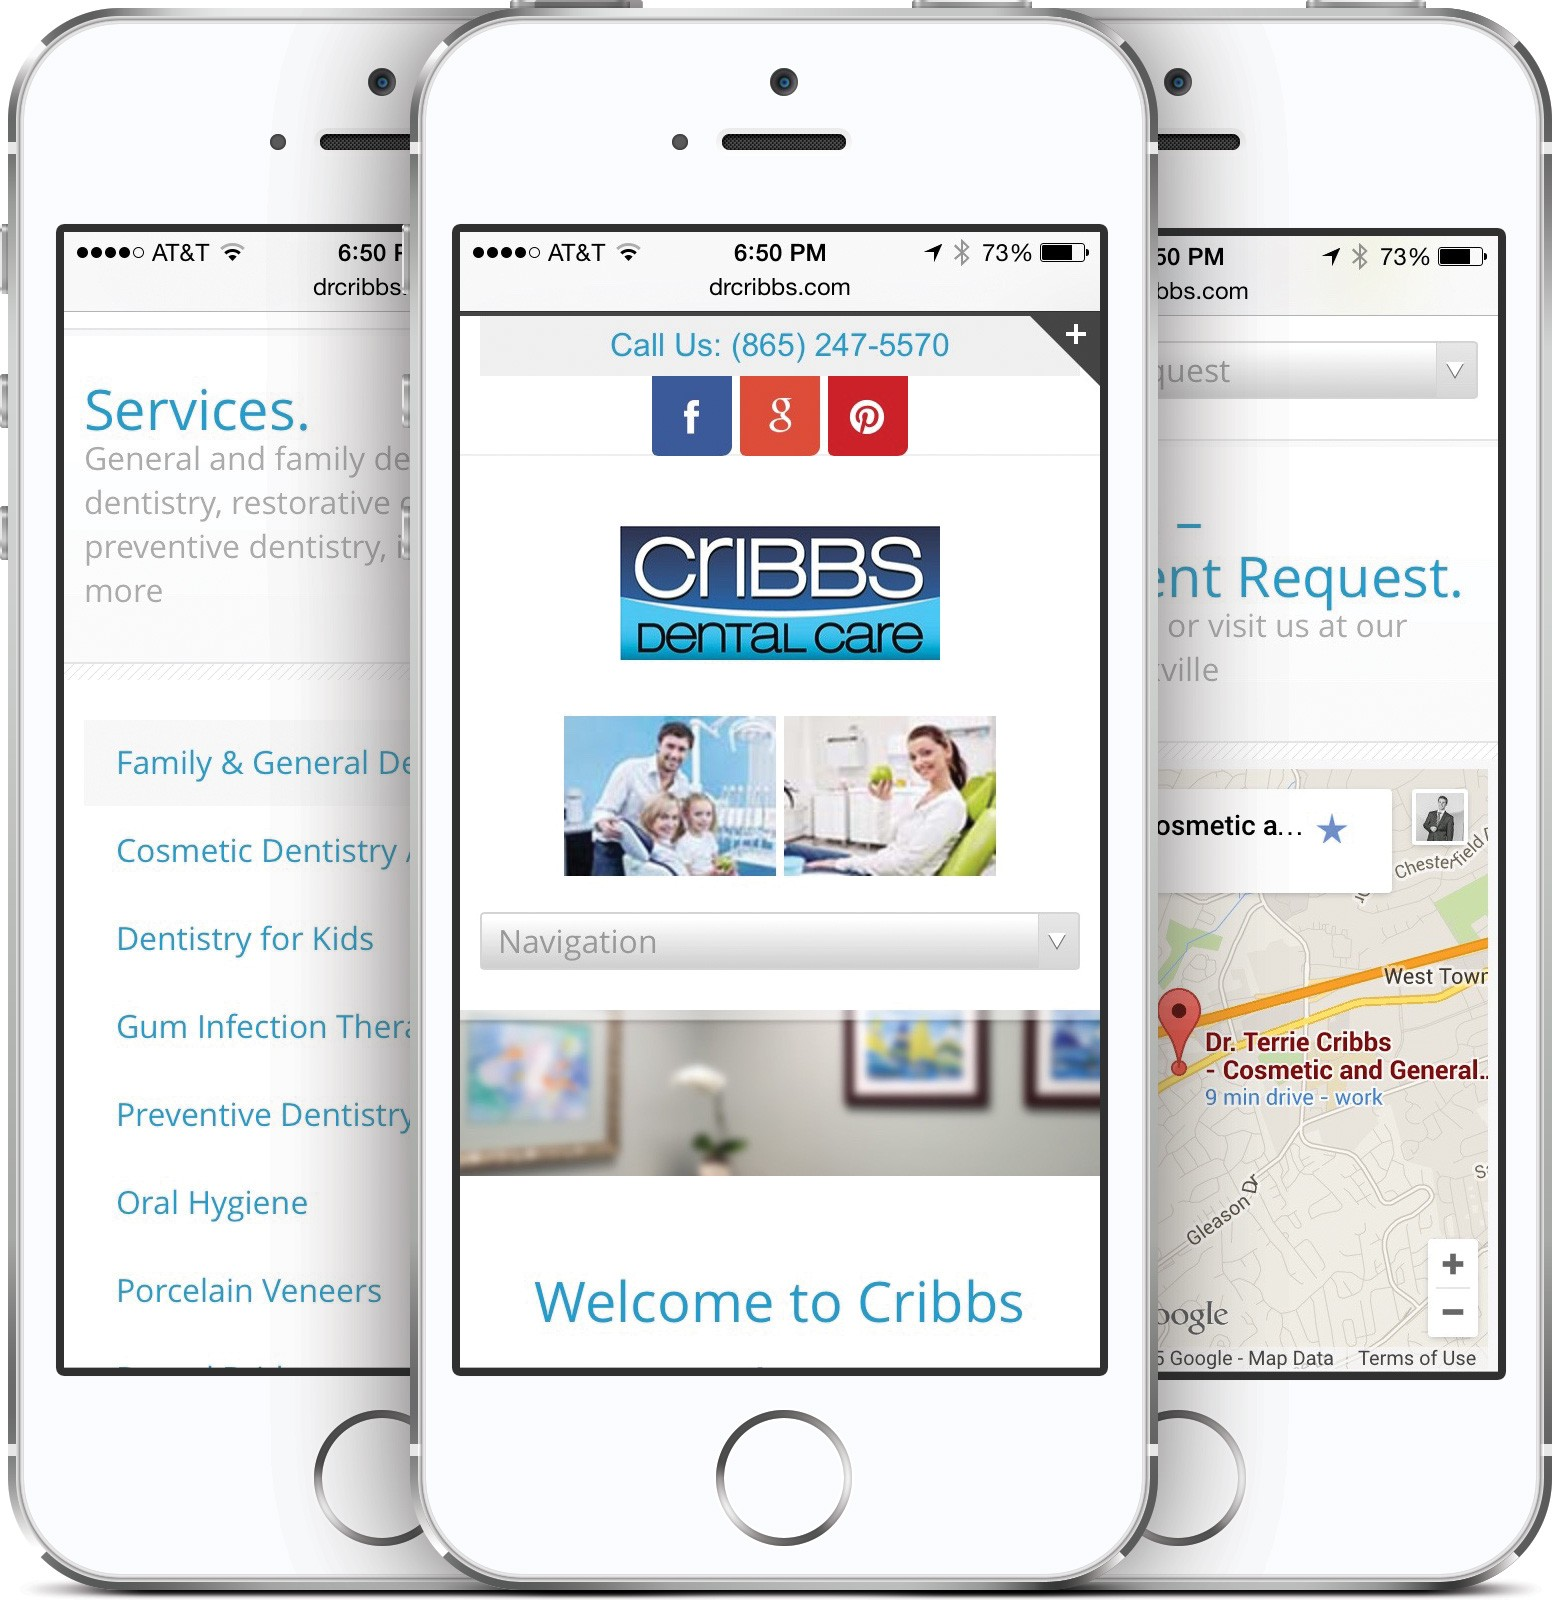 Cribbs Dental Care Mobile-Friendly Web Design